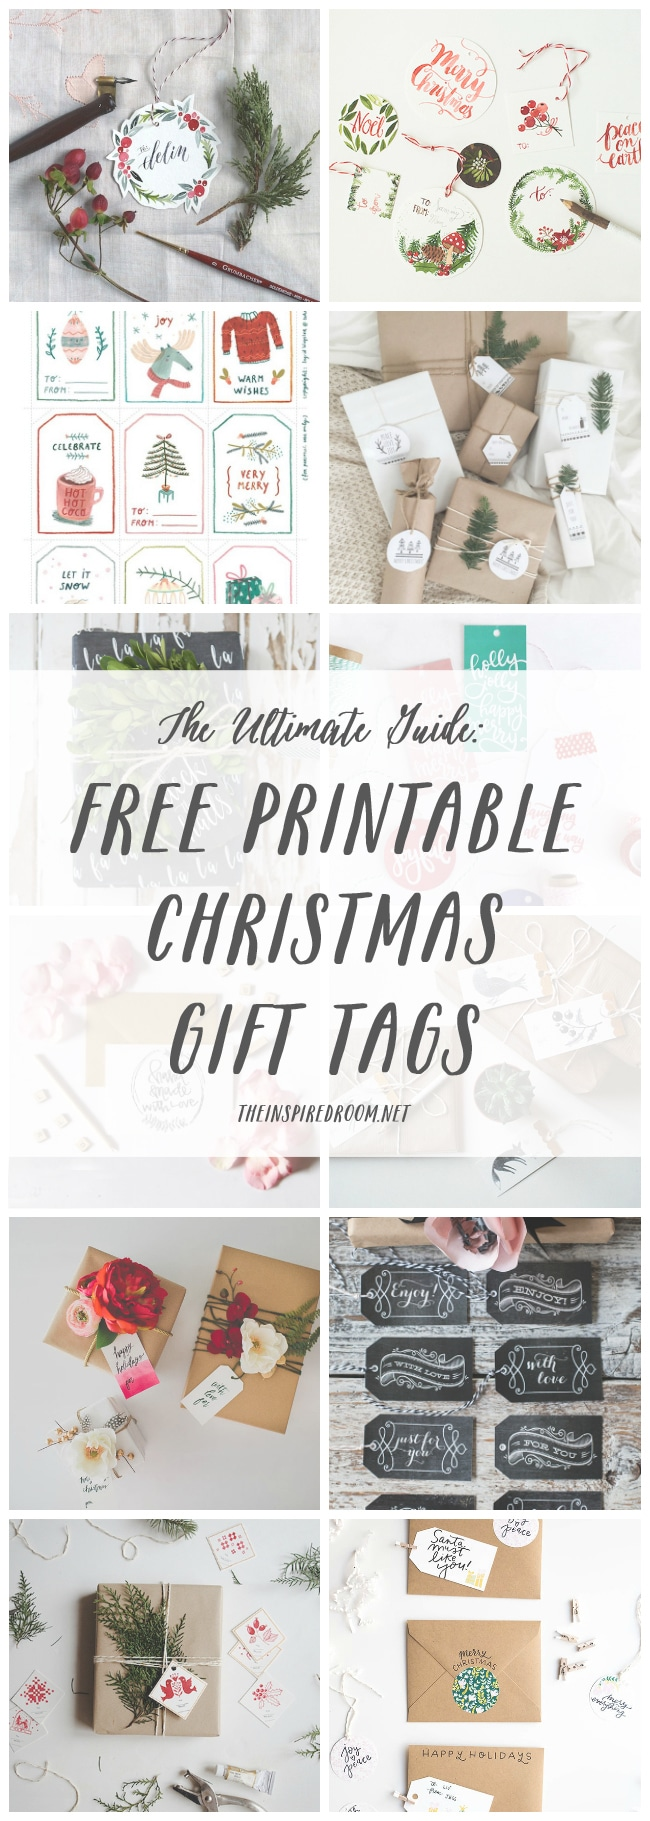 The Ultimate Adorable FREE Printable Christmas Gift Tag Round Up!